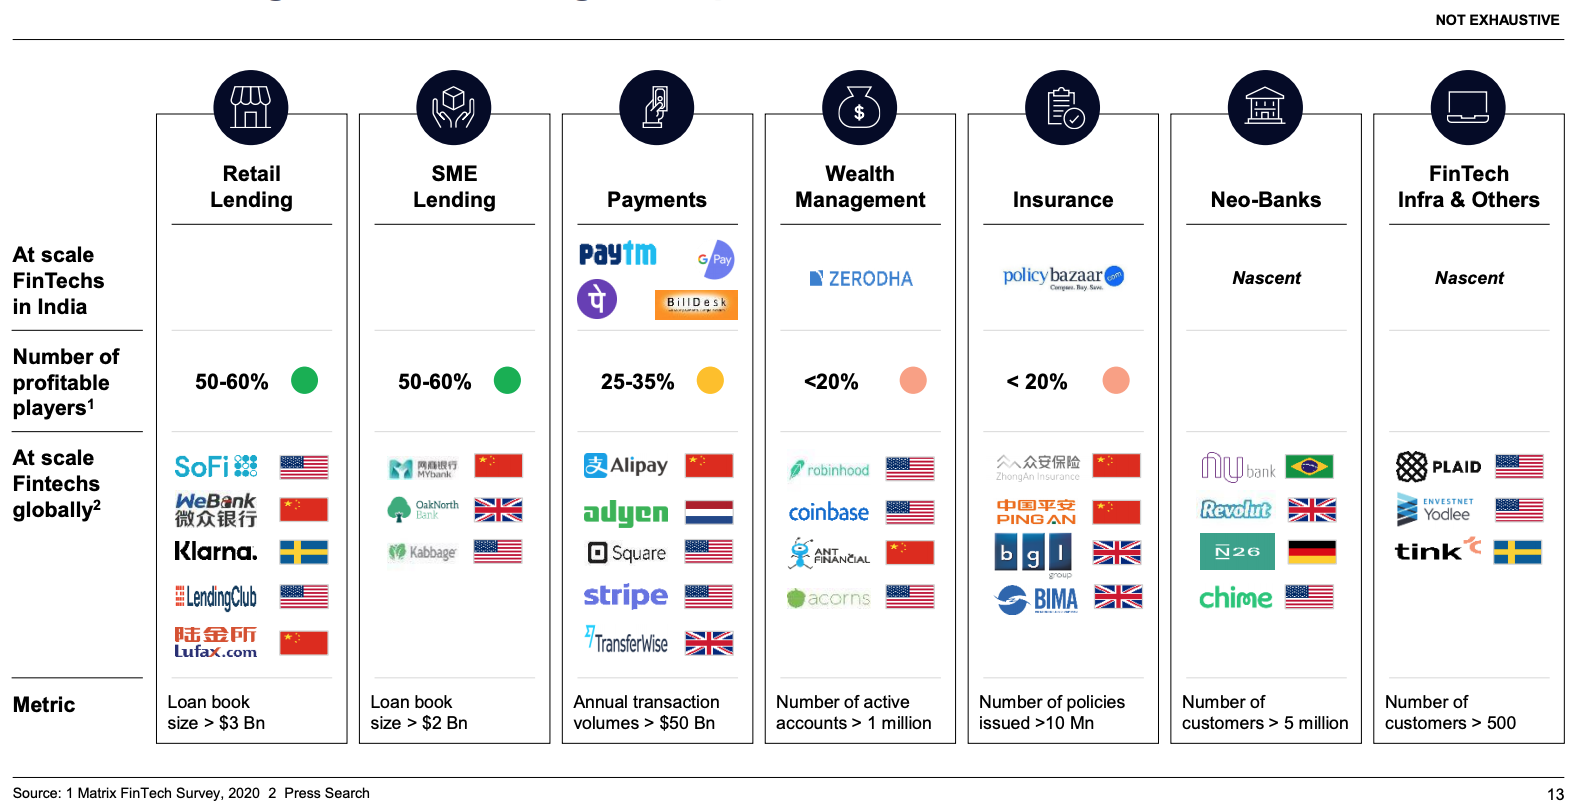 Indian fintechs scale and profitability compared to global peers